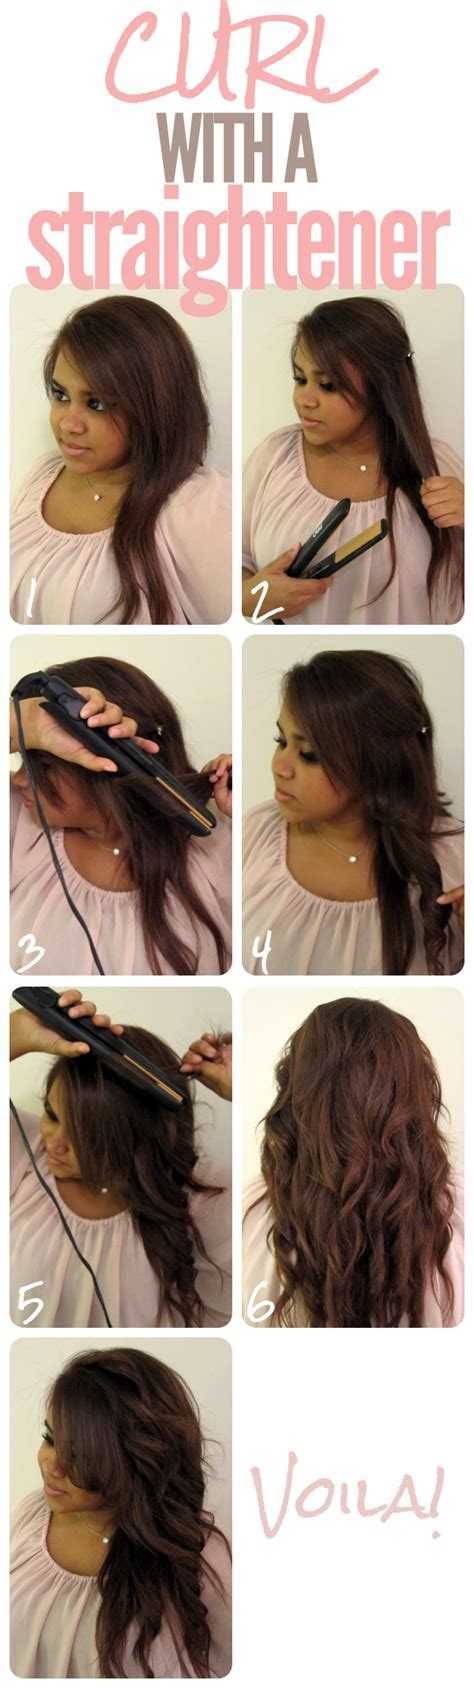 How to curl long hair with a straightener   Hair Style and